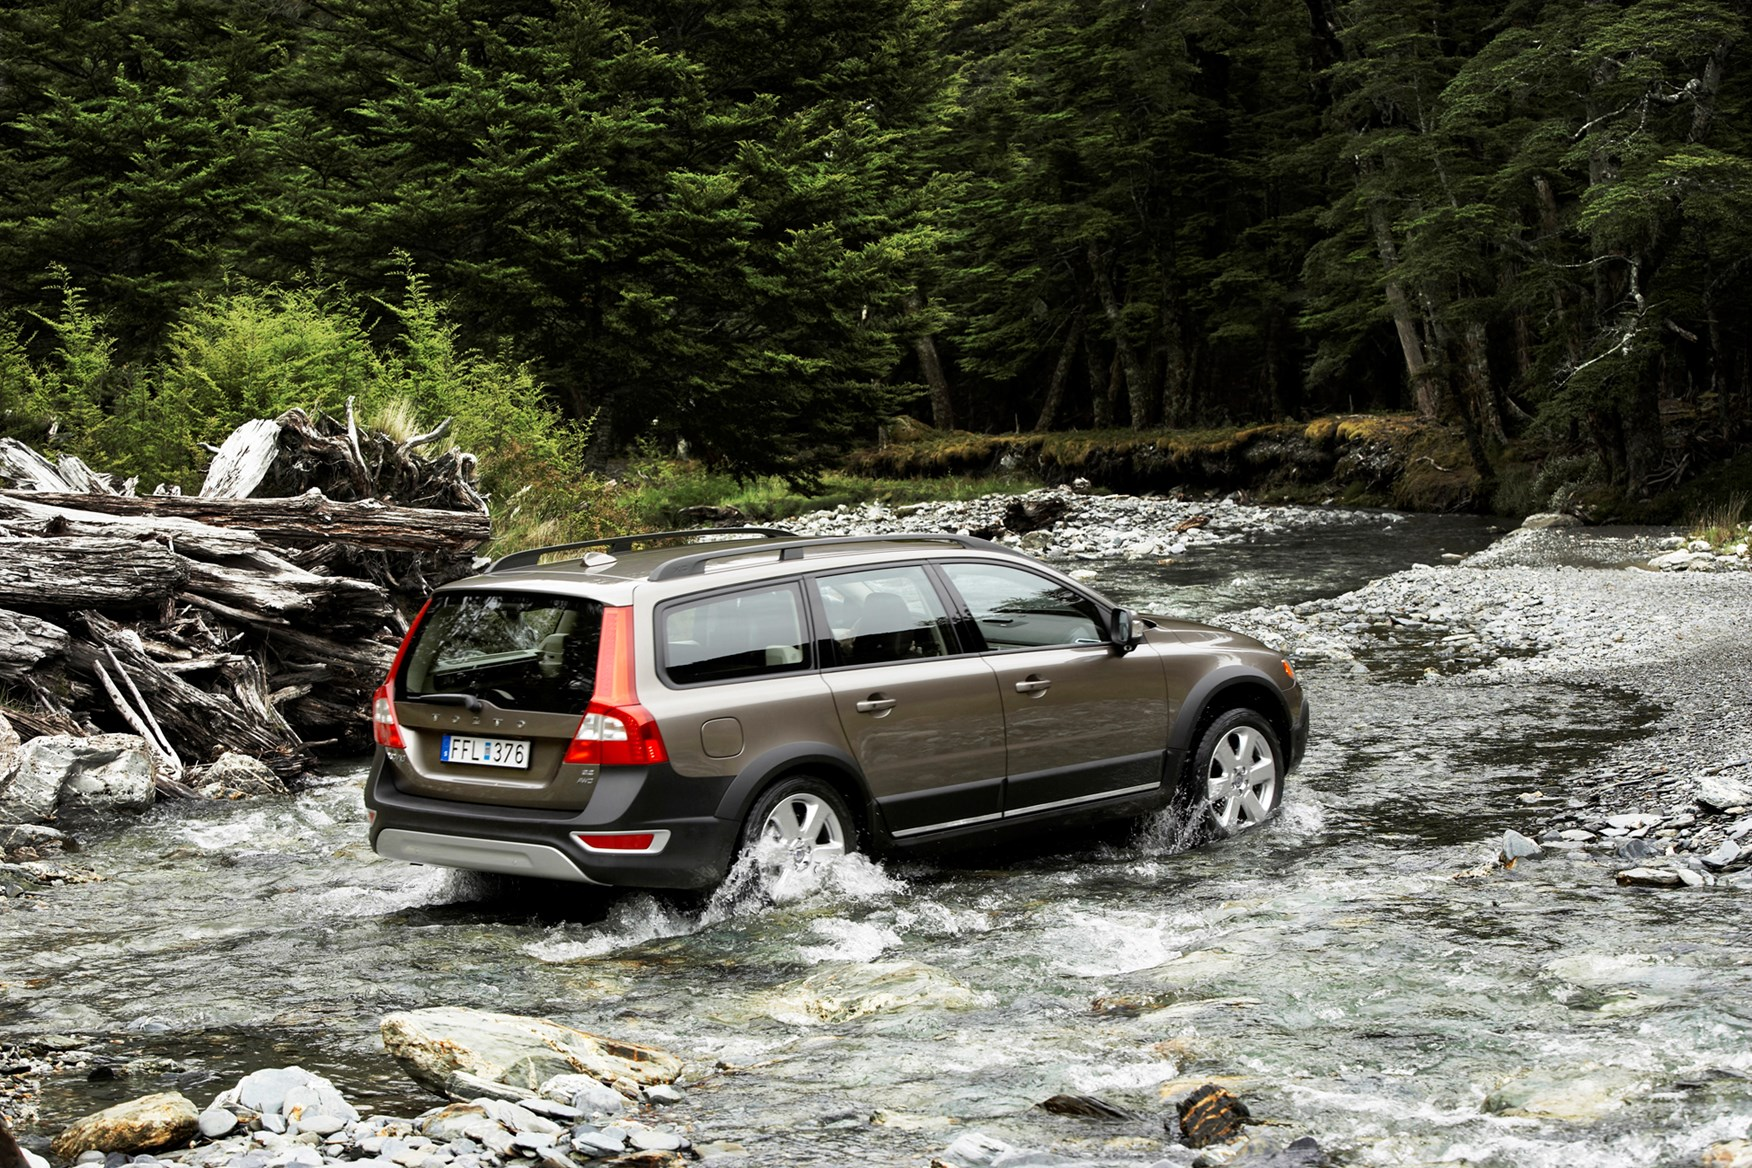 View all images of the volvo xc70 07 16